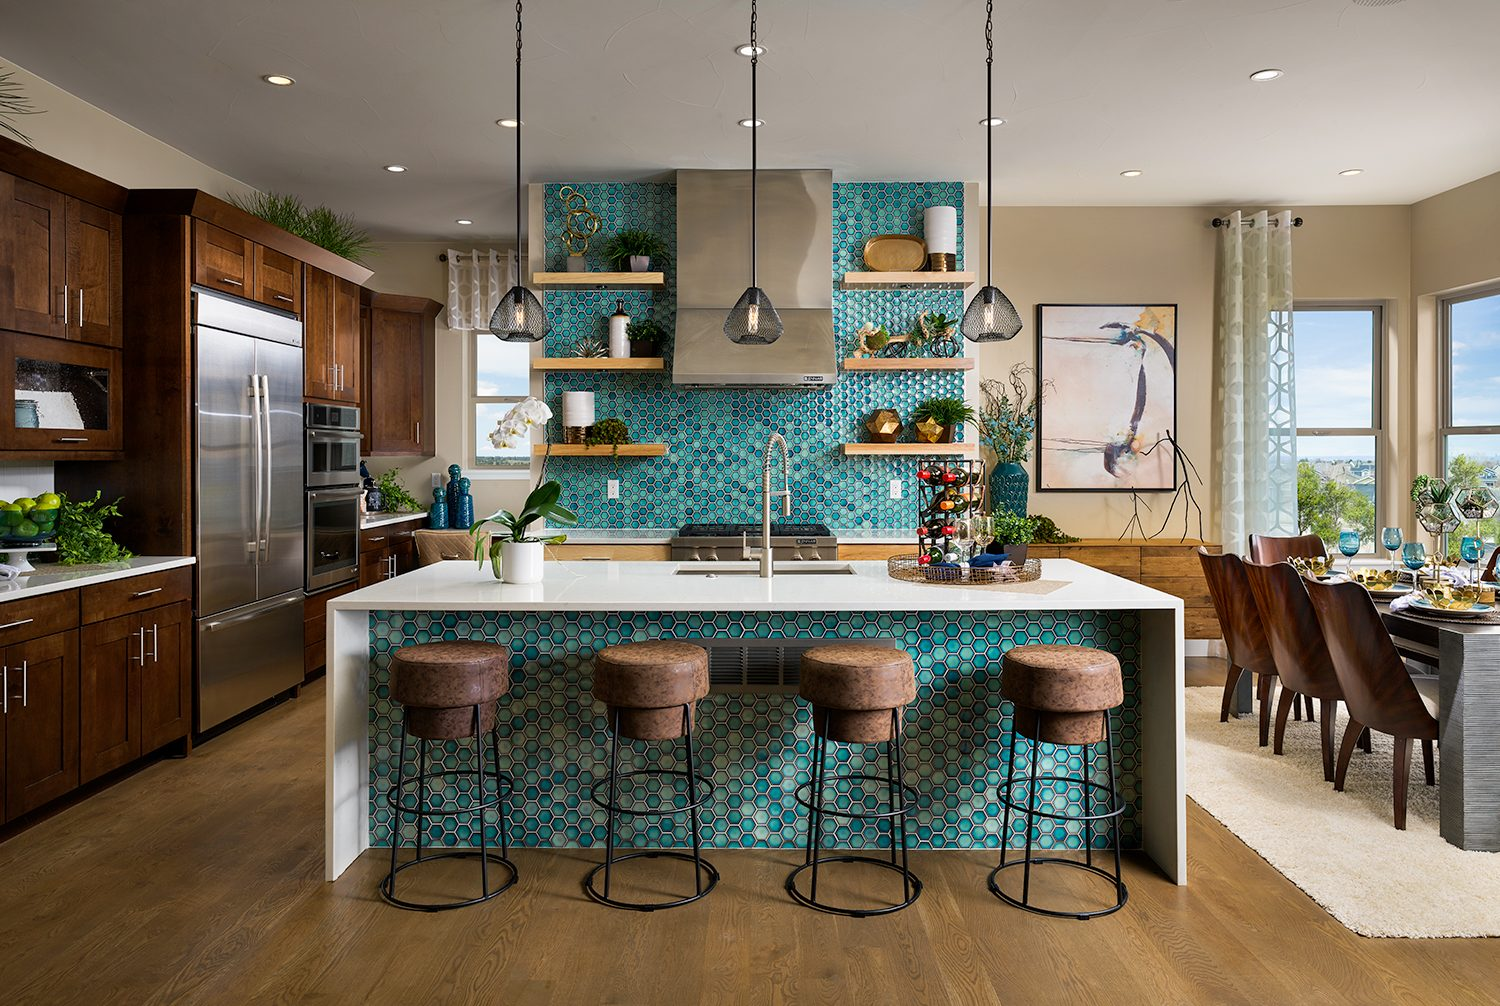 Gorgeous modern kitchen with vibrant turquoise accent backsplash and island designed by Godden Sudik Architects